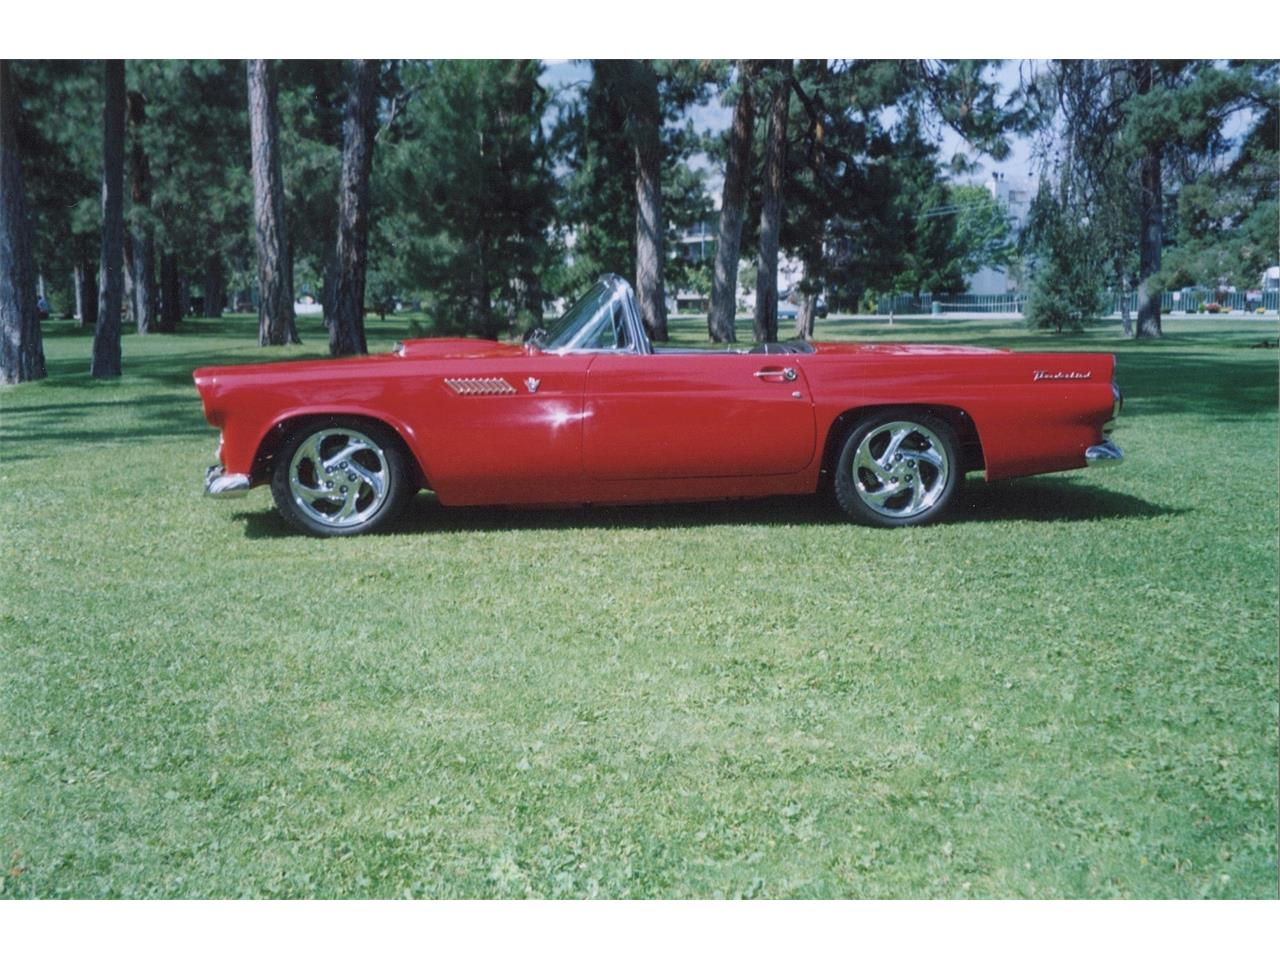 Large Picture of Classic '55 Ford Thunderbird located in West Kelowna British Columbia - $39,500.00 - GI3T